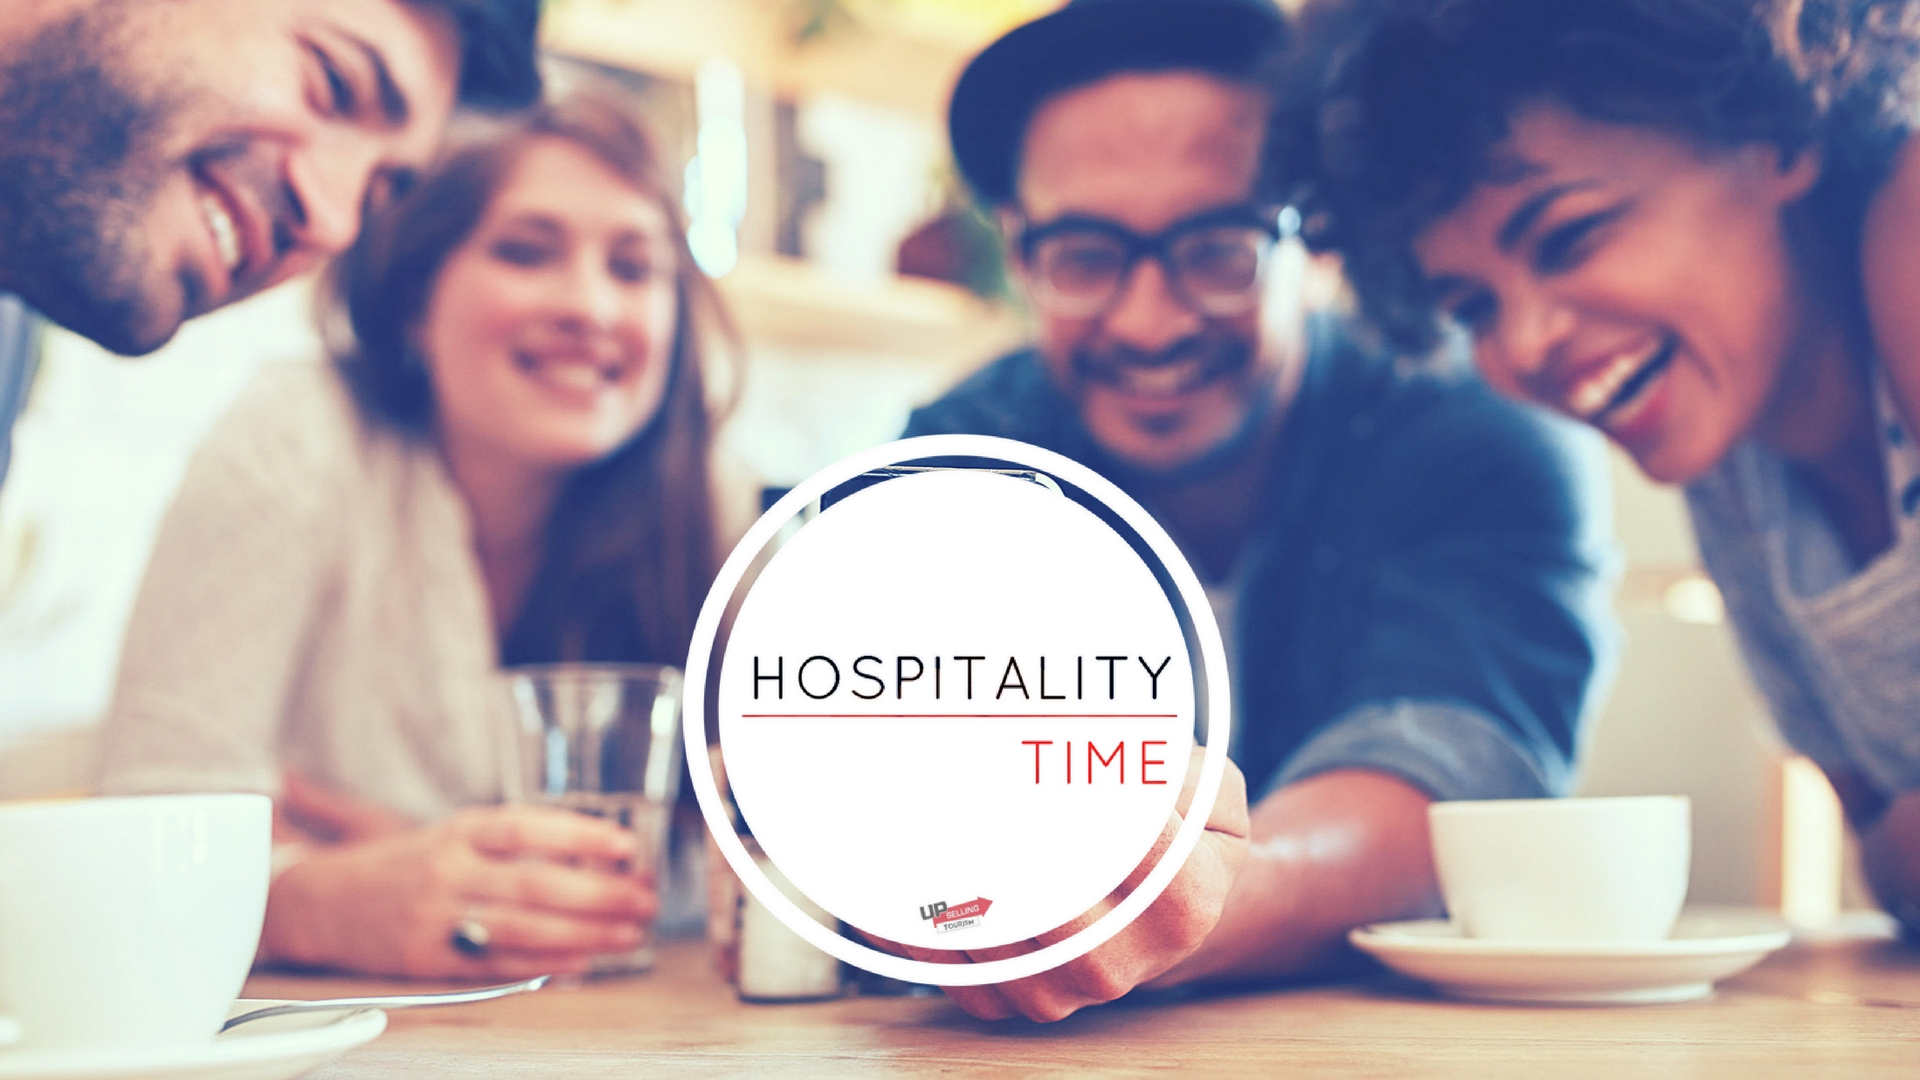 Hospitality Time di Upselling Tourism Consulting